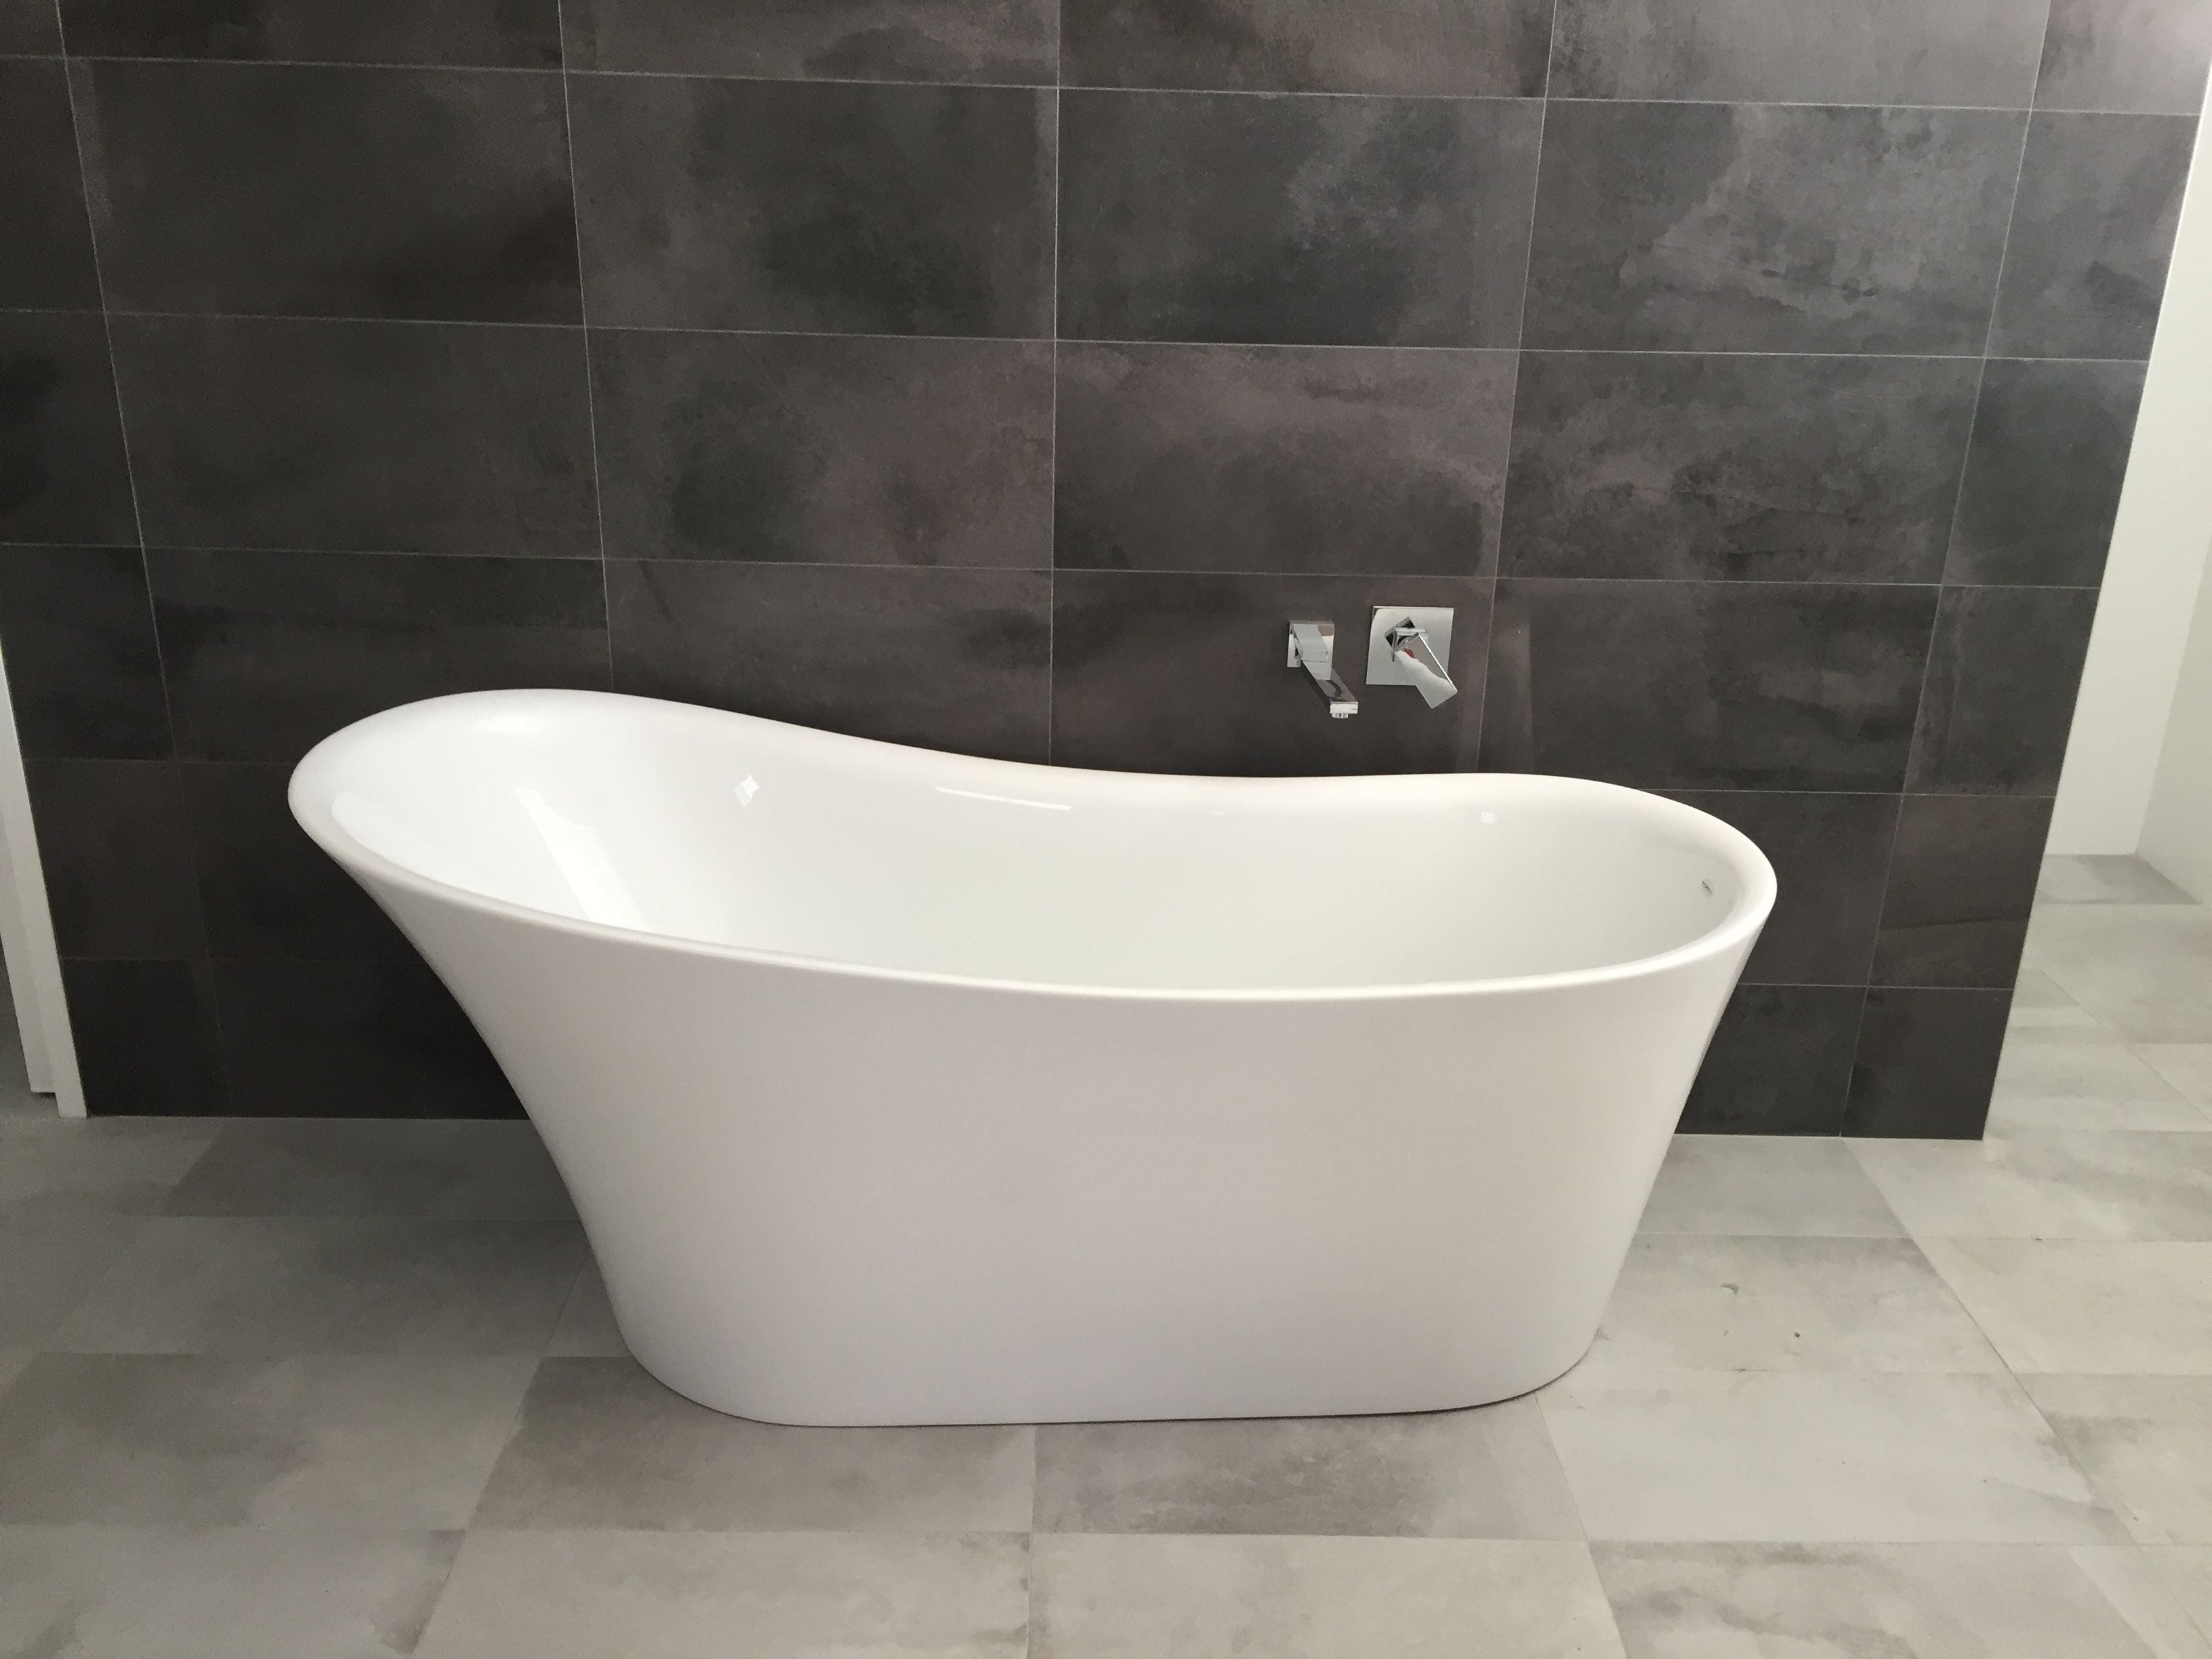 Freestanding Bath Dark Grey Feature Wall Light Grey Floor Tiles Toilet To Left Side Behind Wall Grey Feature Wall Dark Grey Feature Wall Free Standing Bath